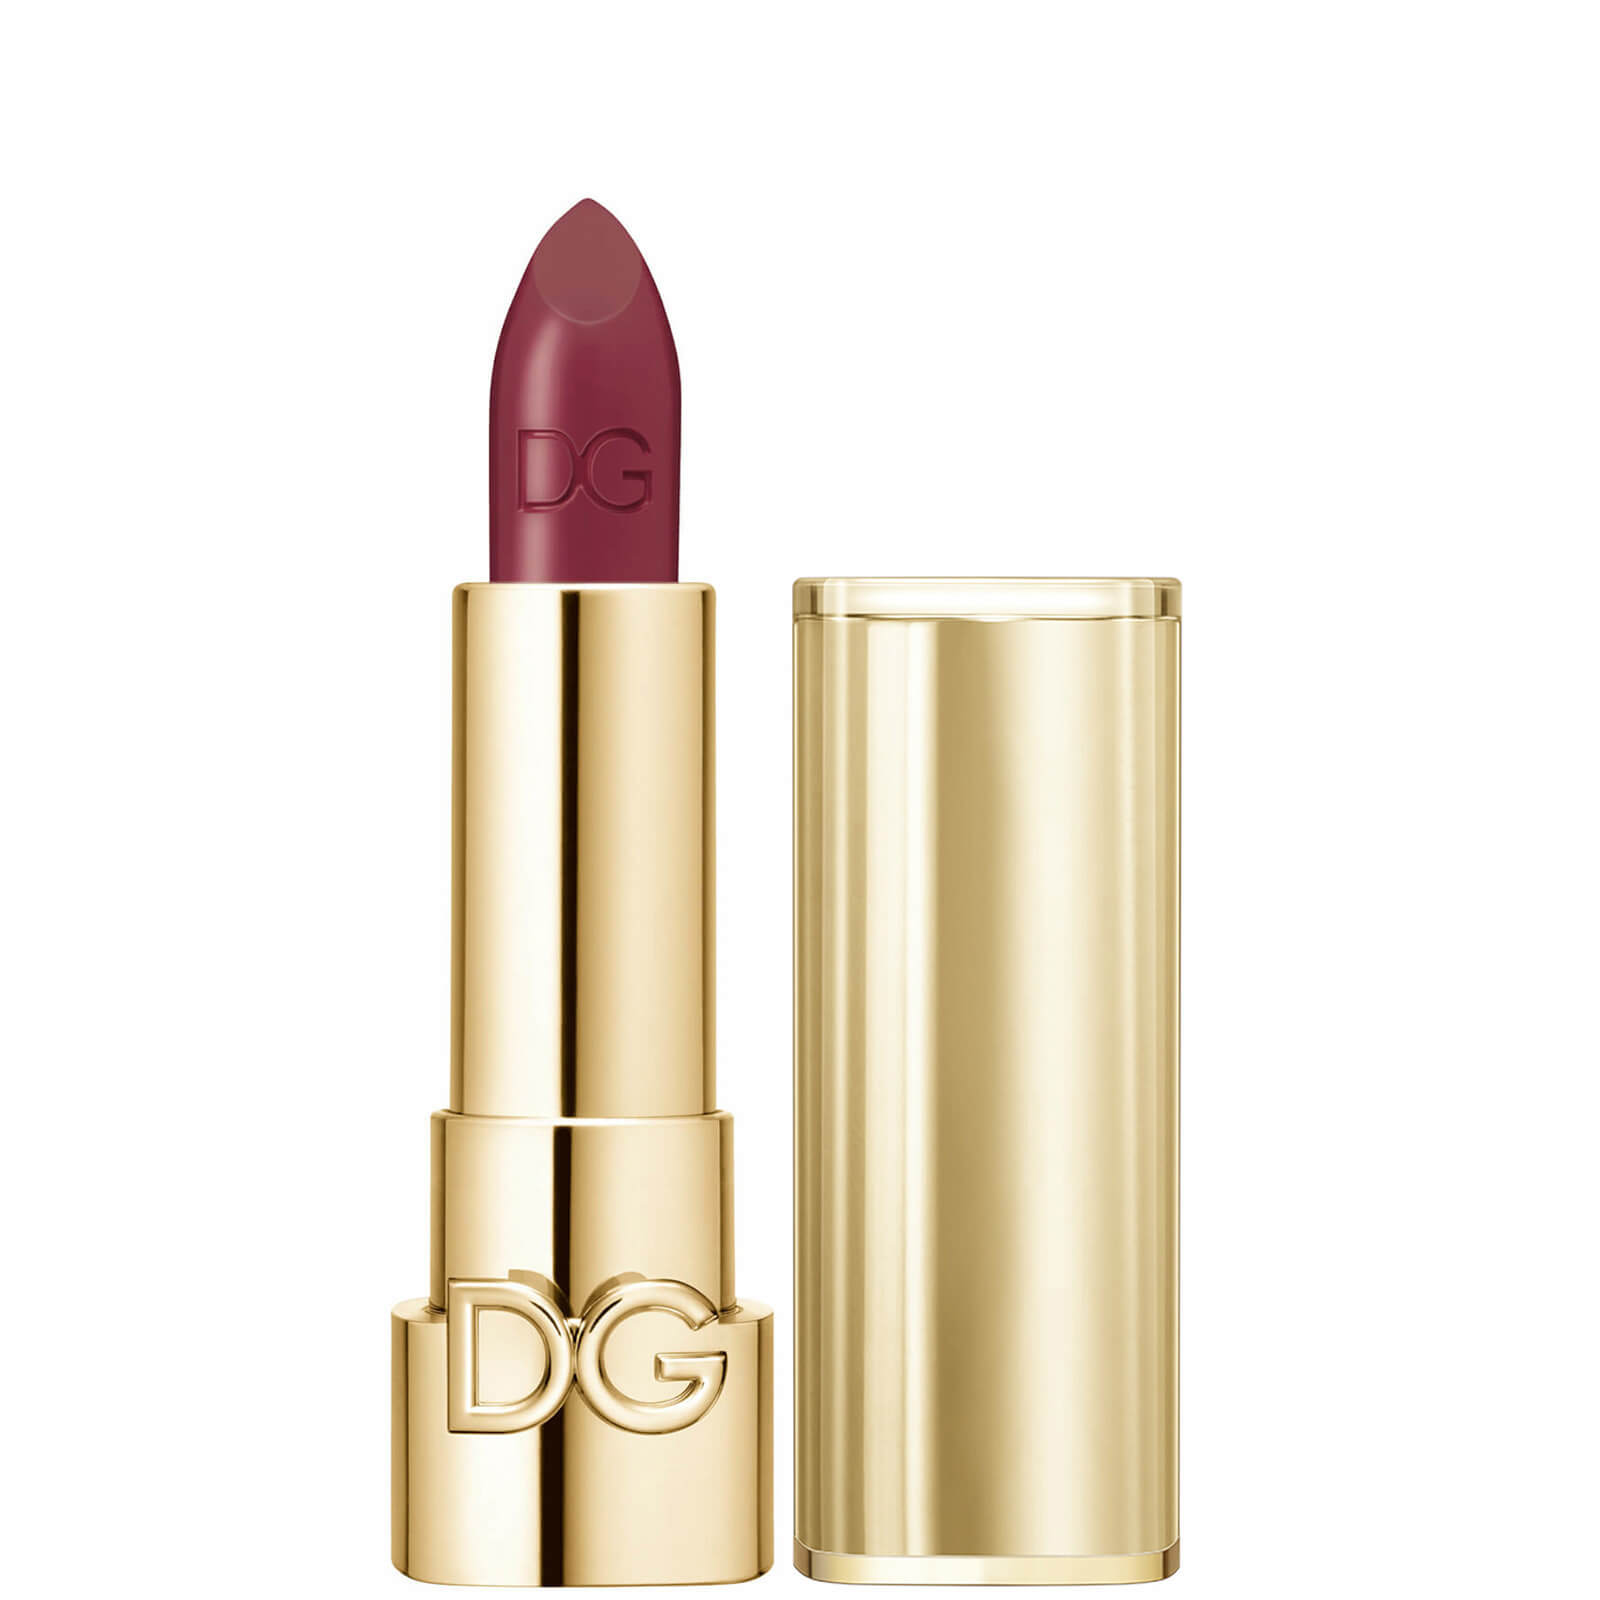 Dolce&Gabbana The Only One Lipstick + Cap (Gold) (Various Shades) - 320 Passionate Dahlia